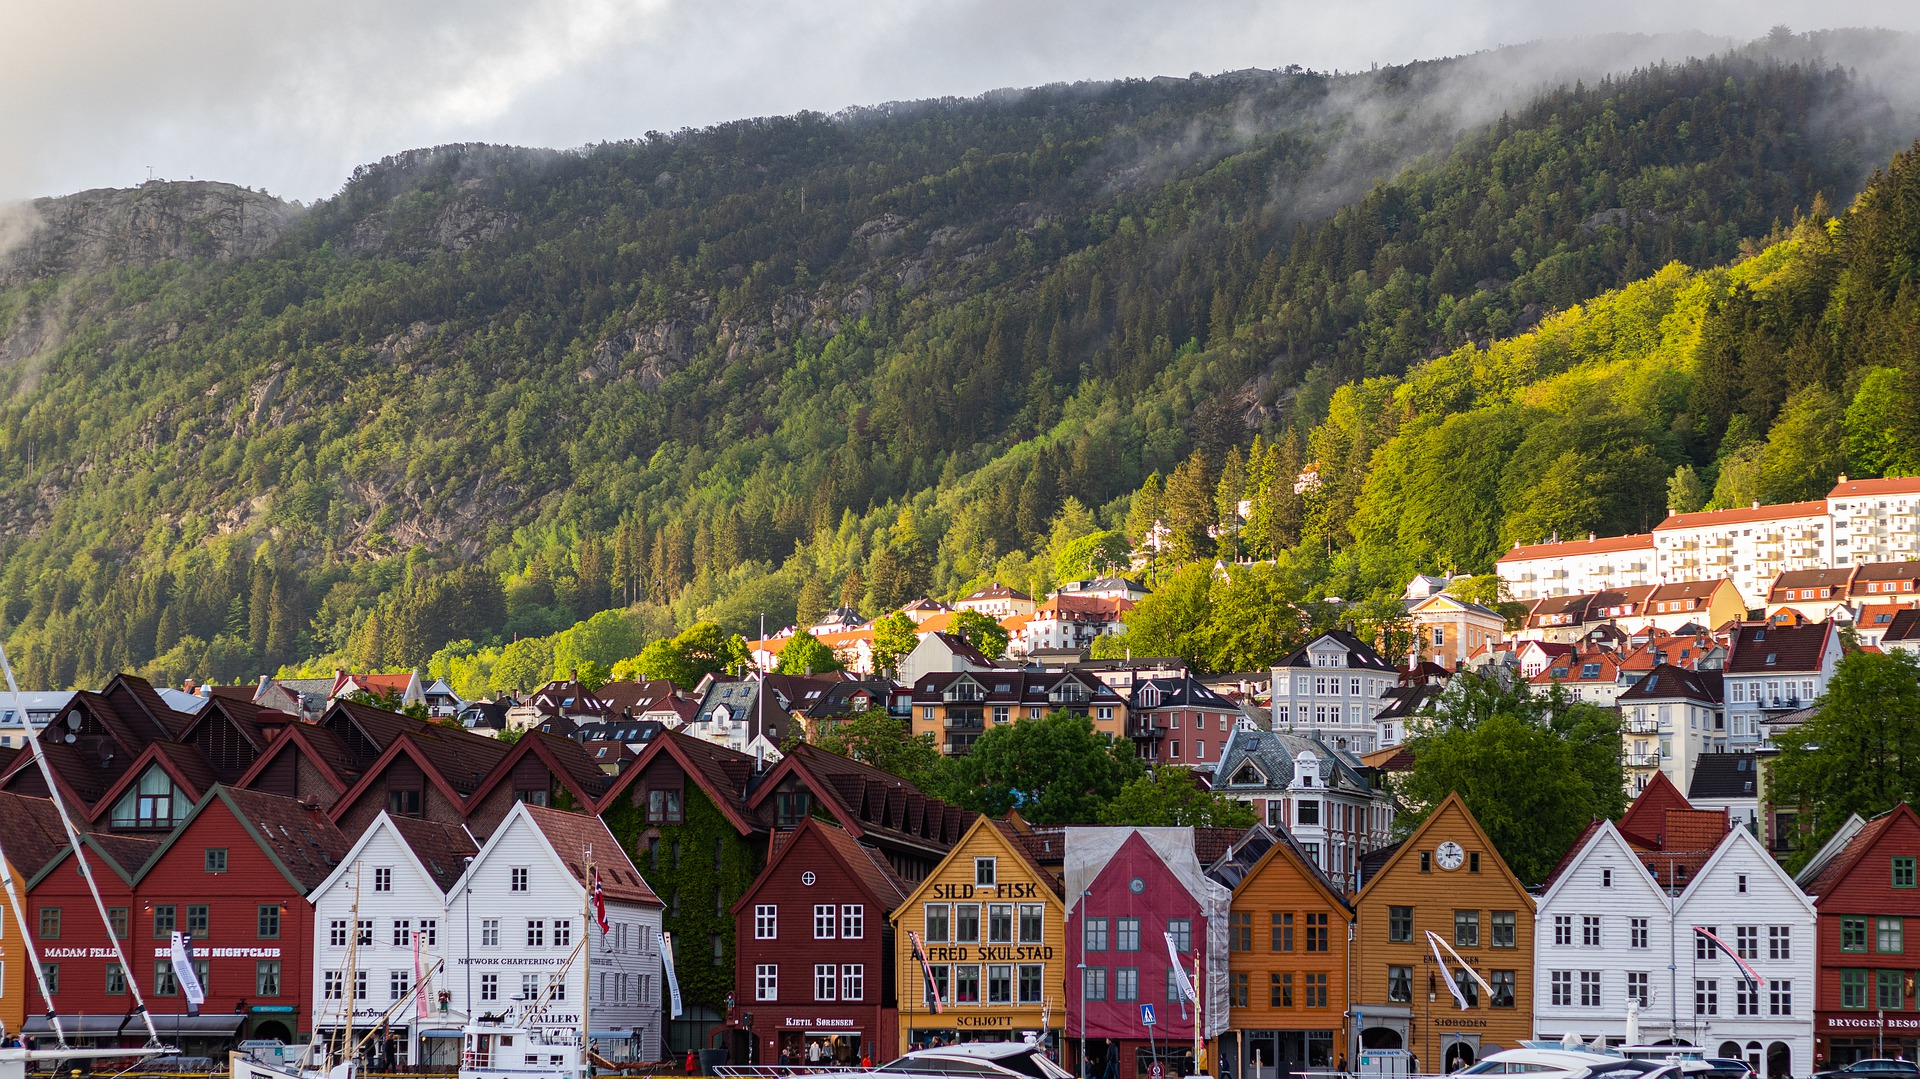 Private detectives and investigators in Norway